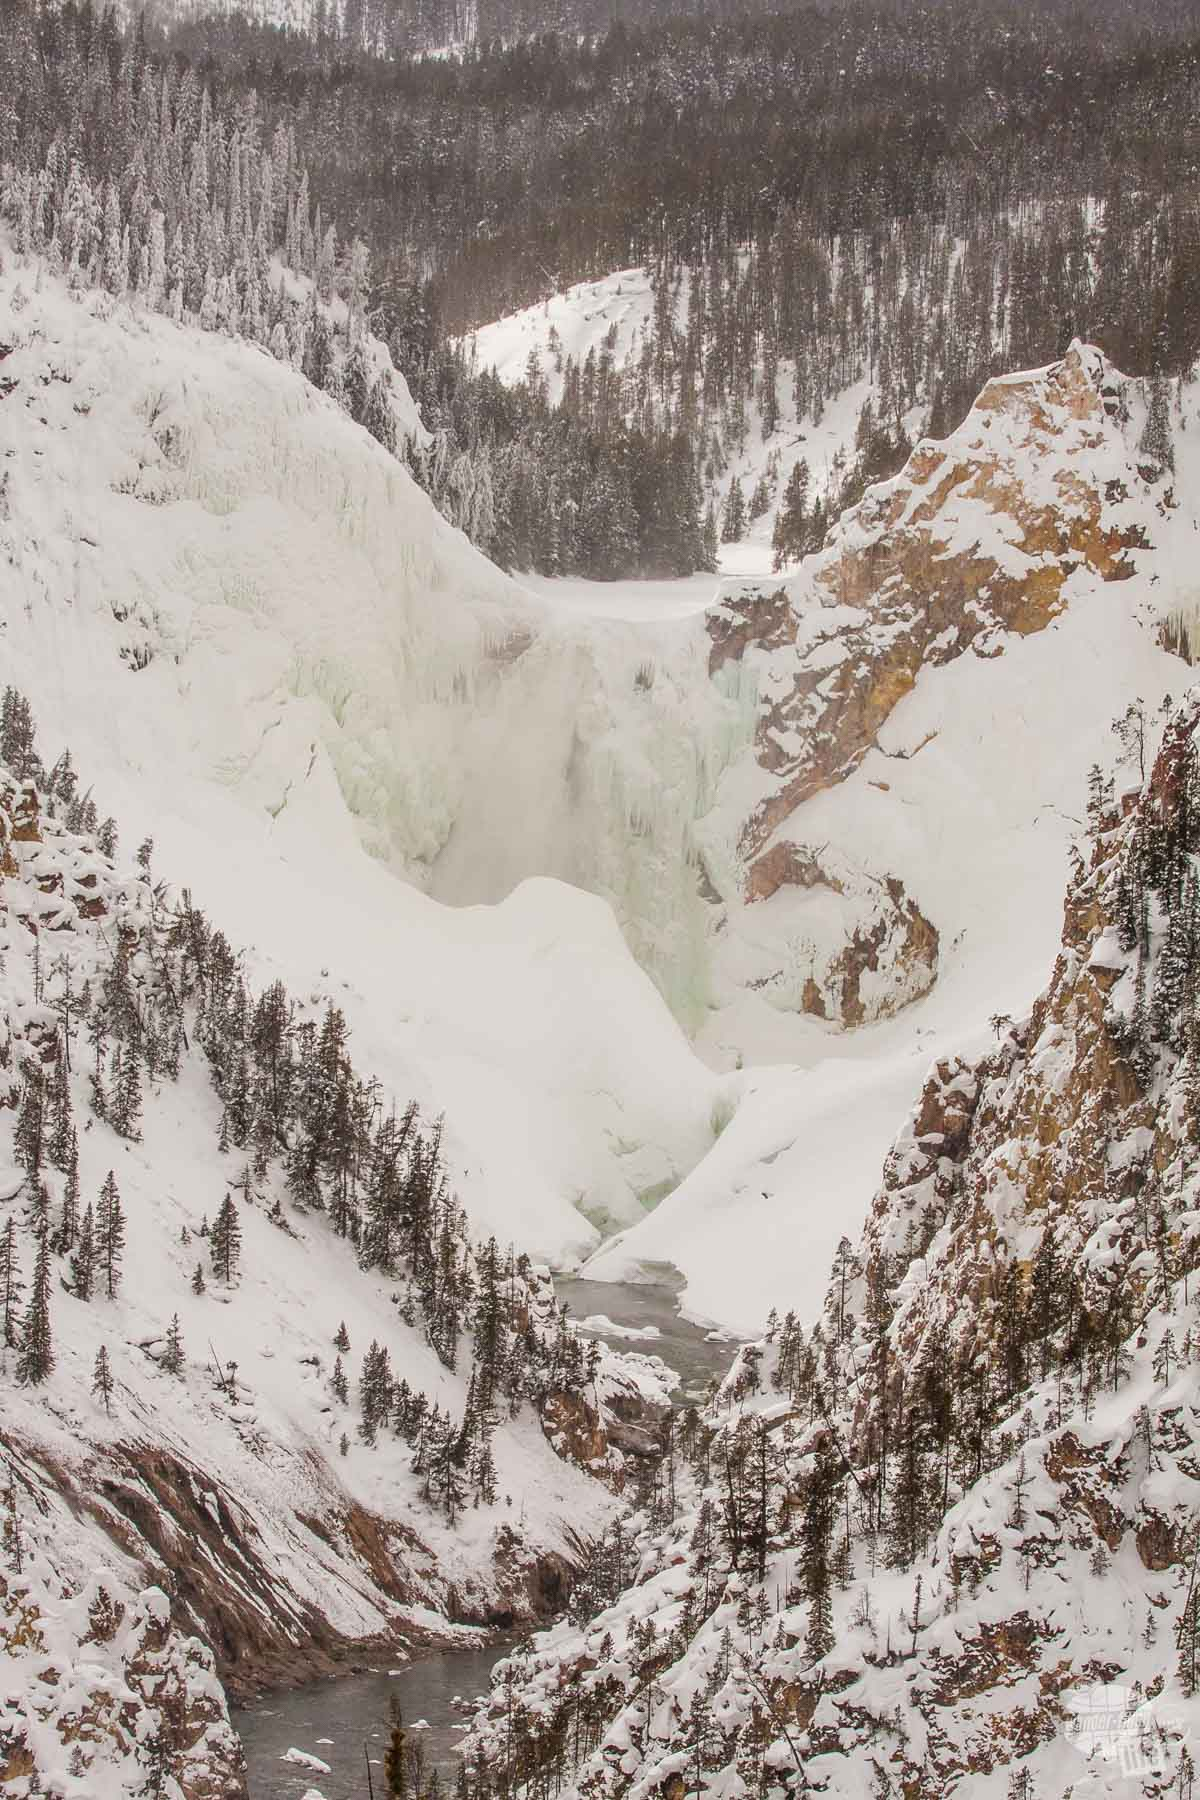 Expect frozen waterfalls at Yellowstone National Park in the winter.